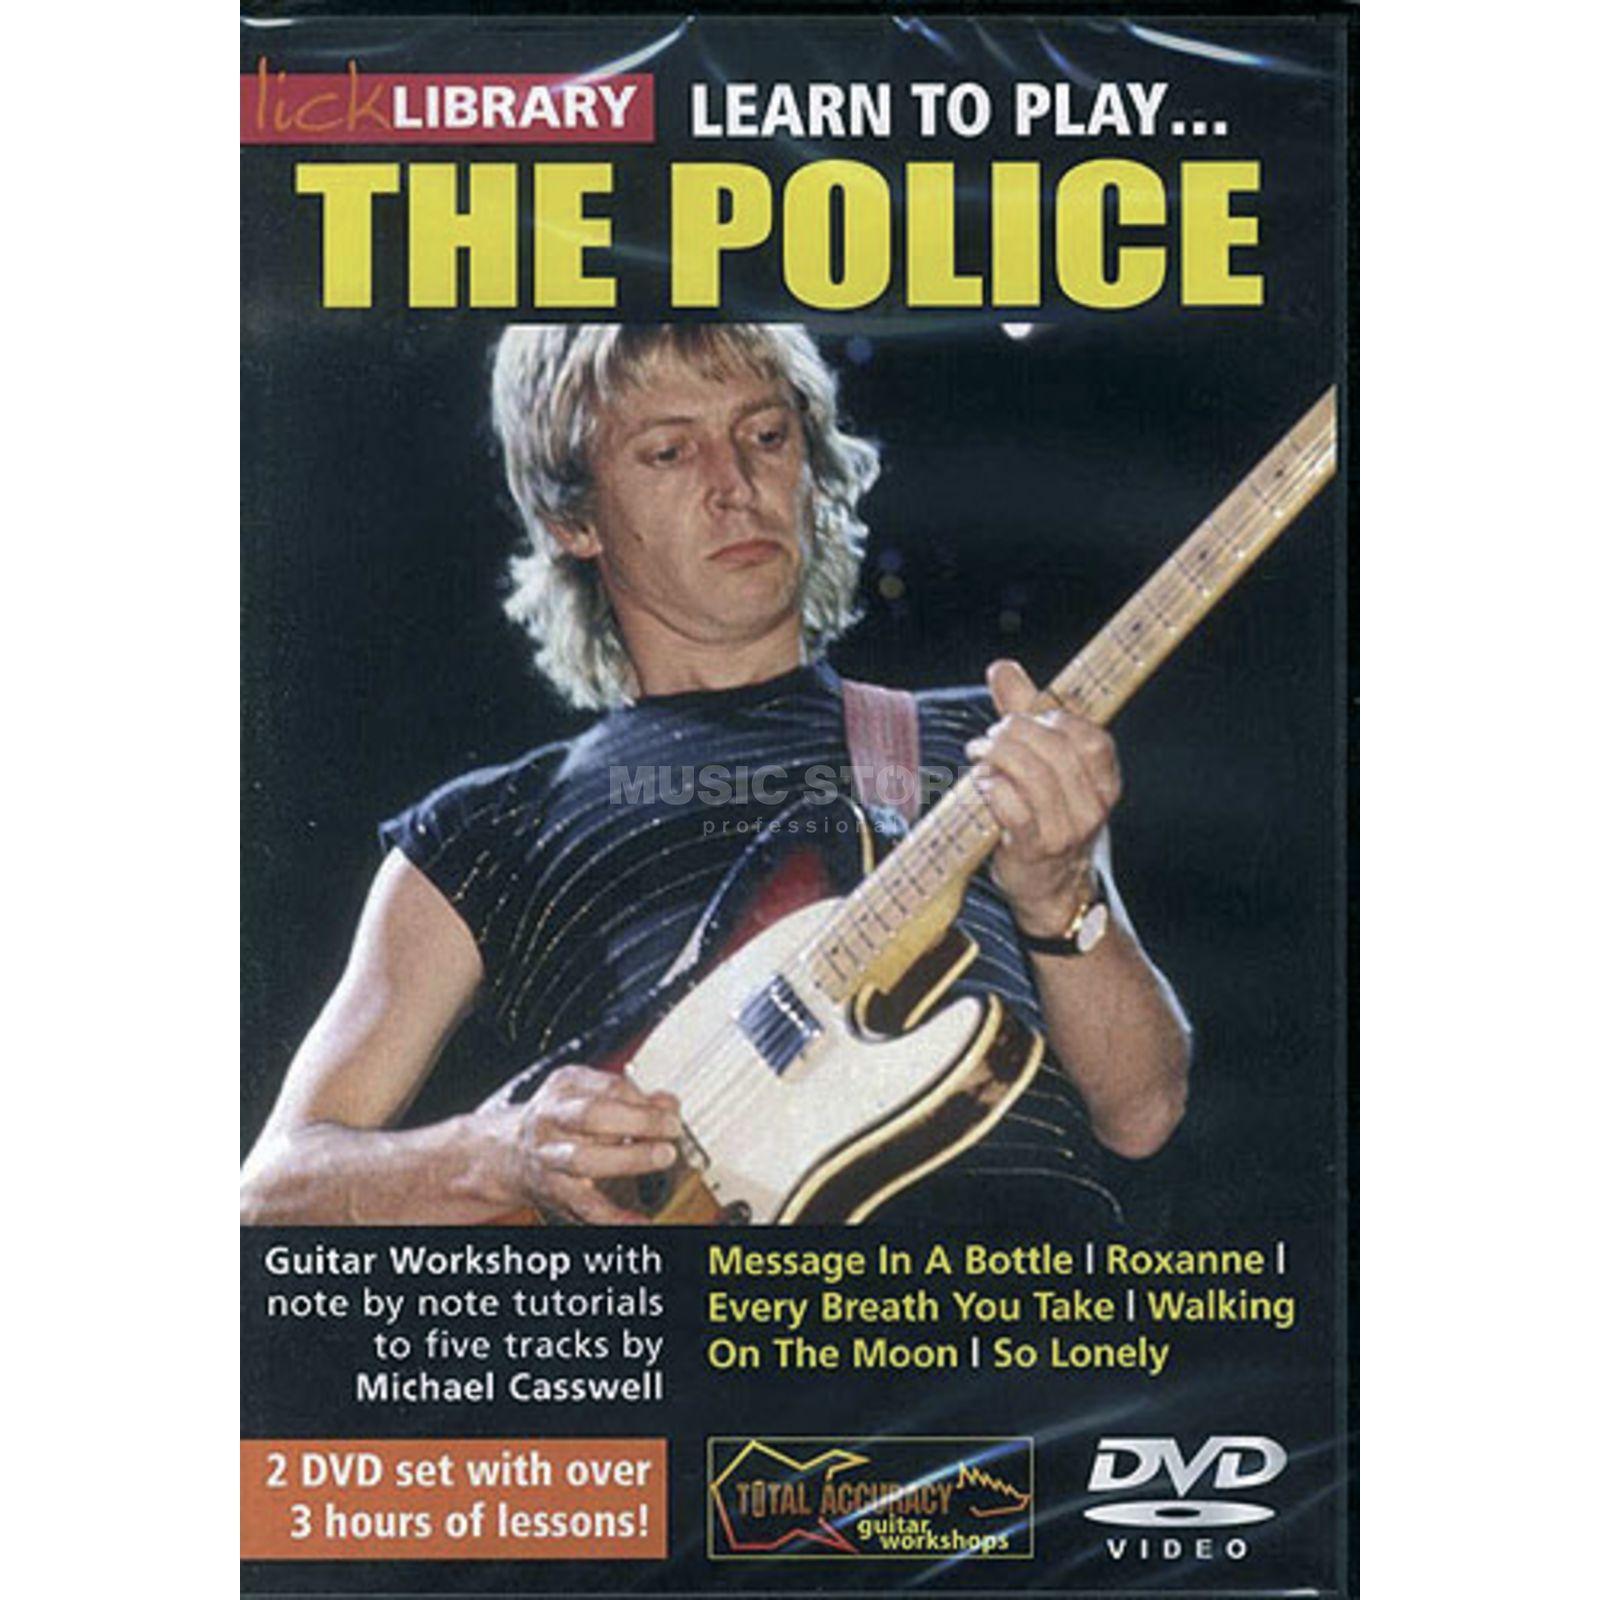 Roadrock International Lick Library: Learn To Play The Police DVD Produktbillede